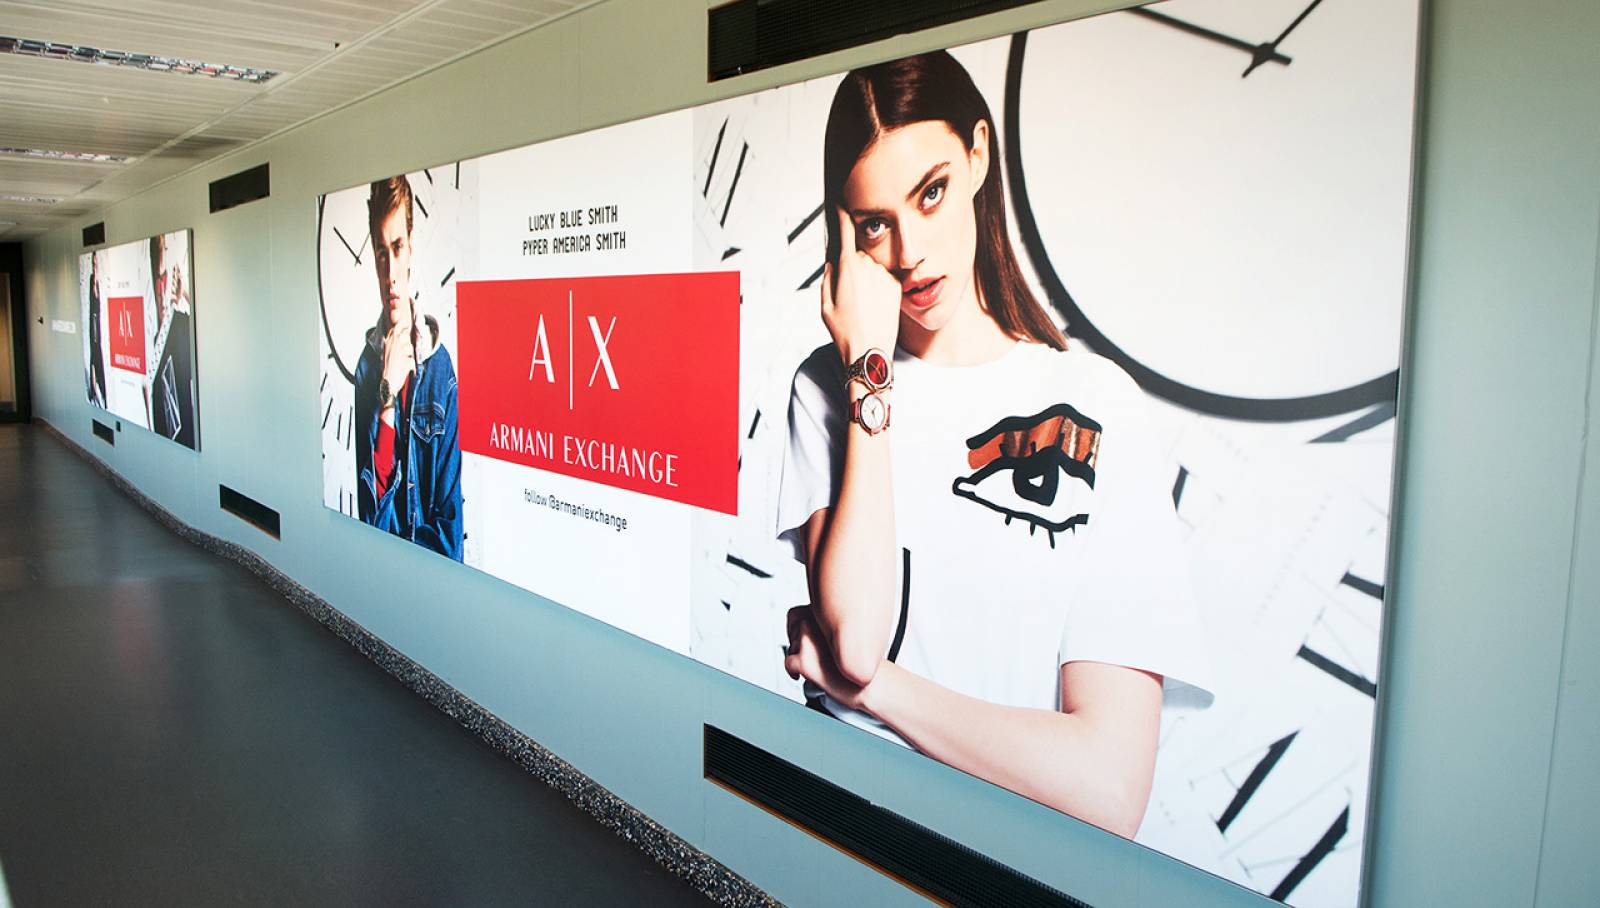 Outdoor advertising at Malpensa airport Finger IGPDecaux for Armani